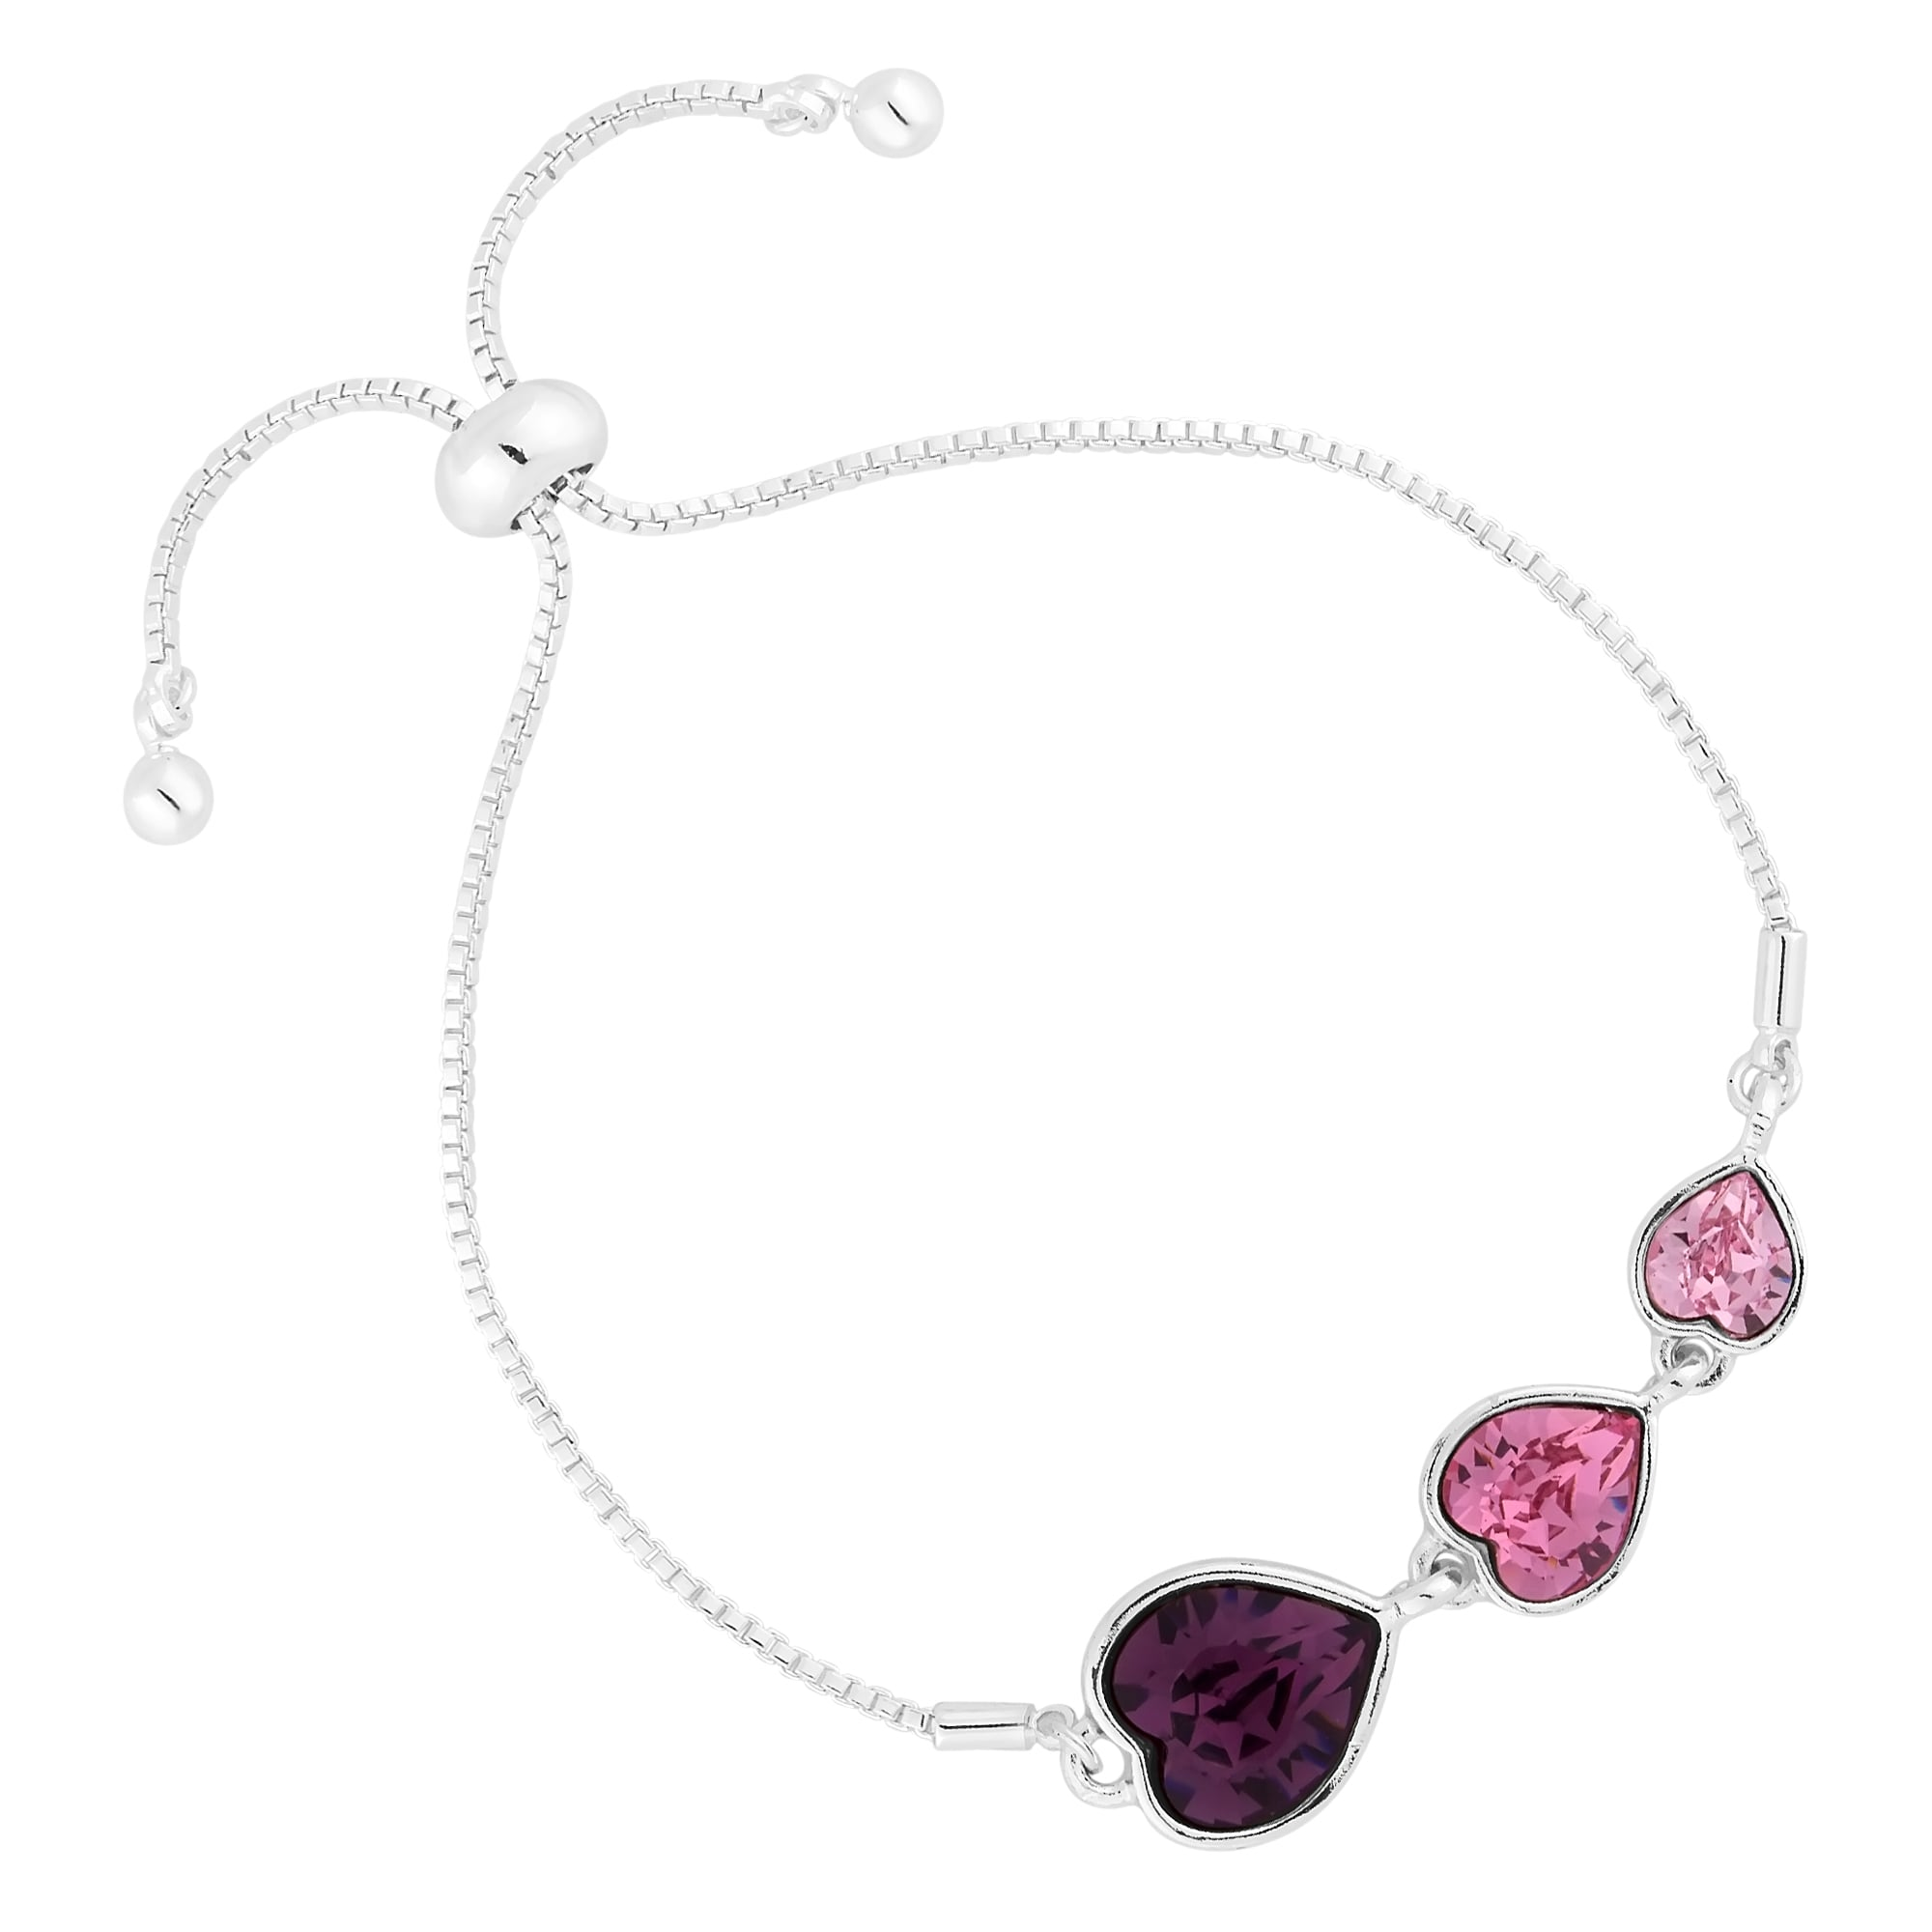 img jewellery store bracelet single product heart jewellers petersens double merivale